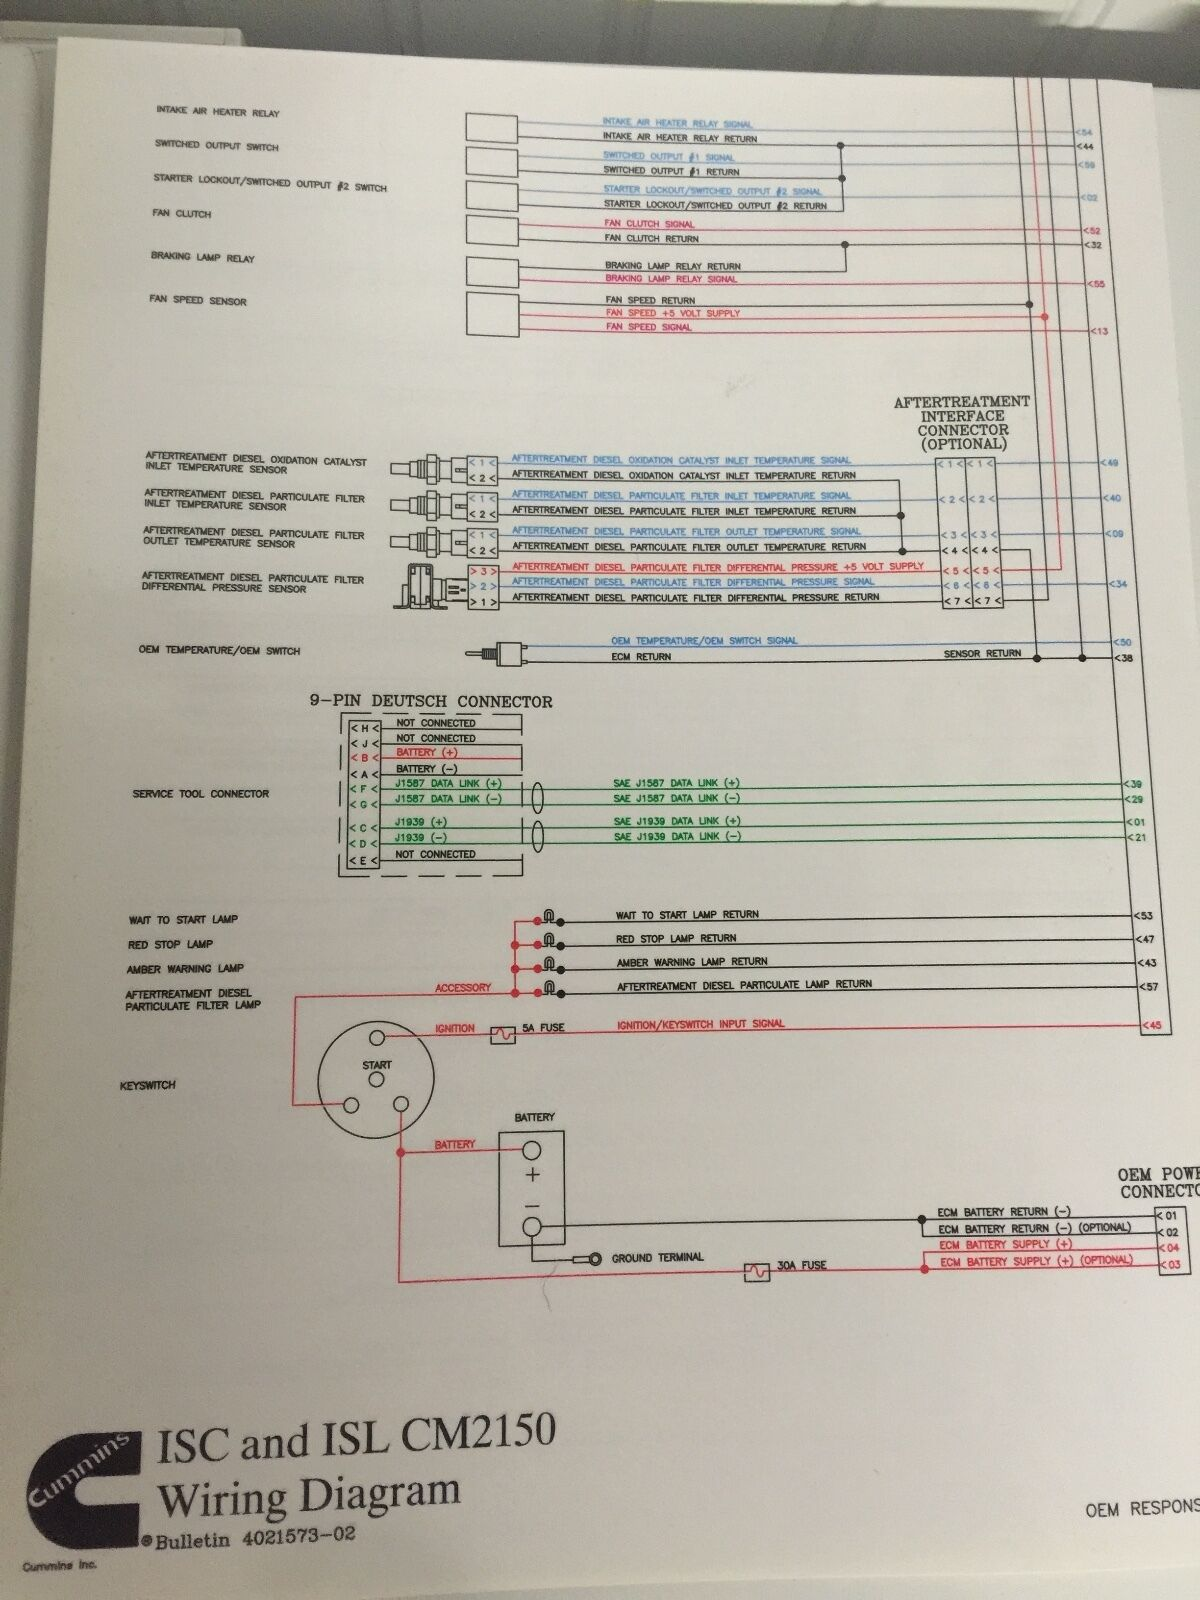 Isc And Isl Cm2150 Wire Diagram Cummins Map 4021573 1099 Picclick J1939 International 4700 Wiring 1 Of 1free Shipping